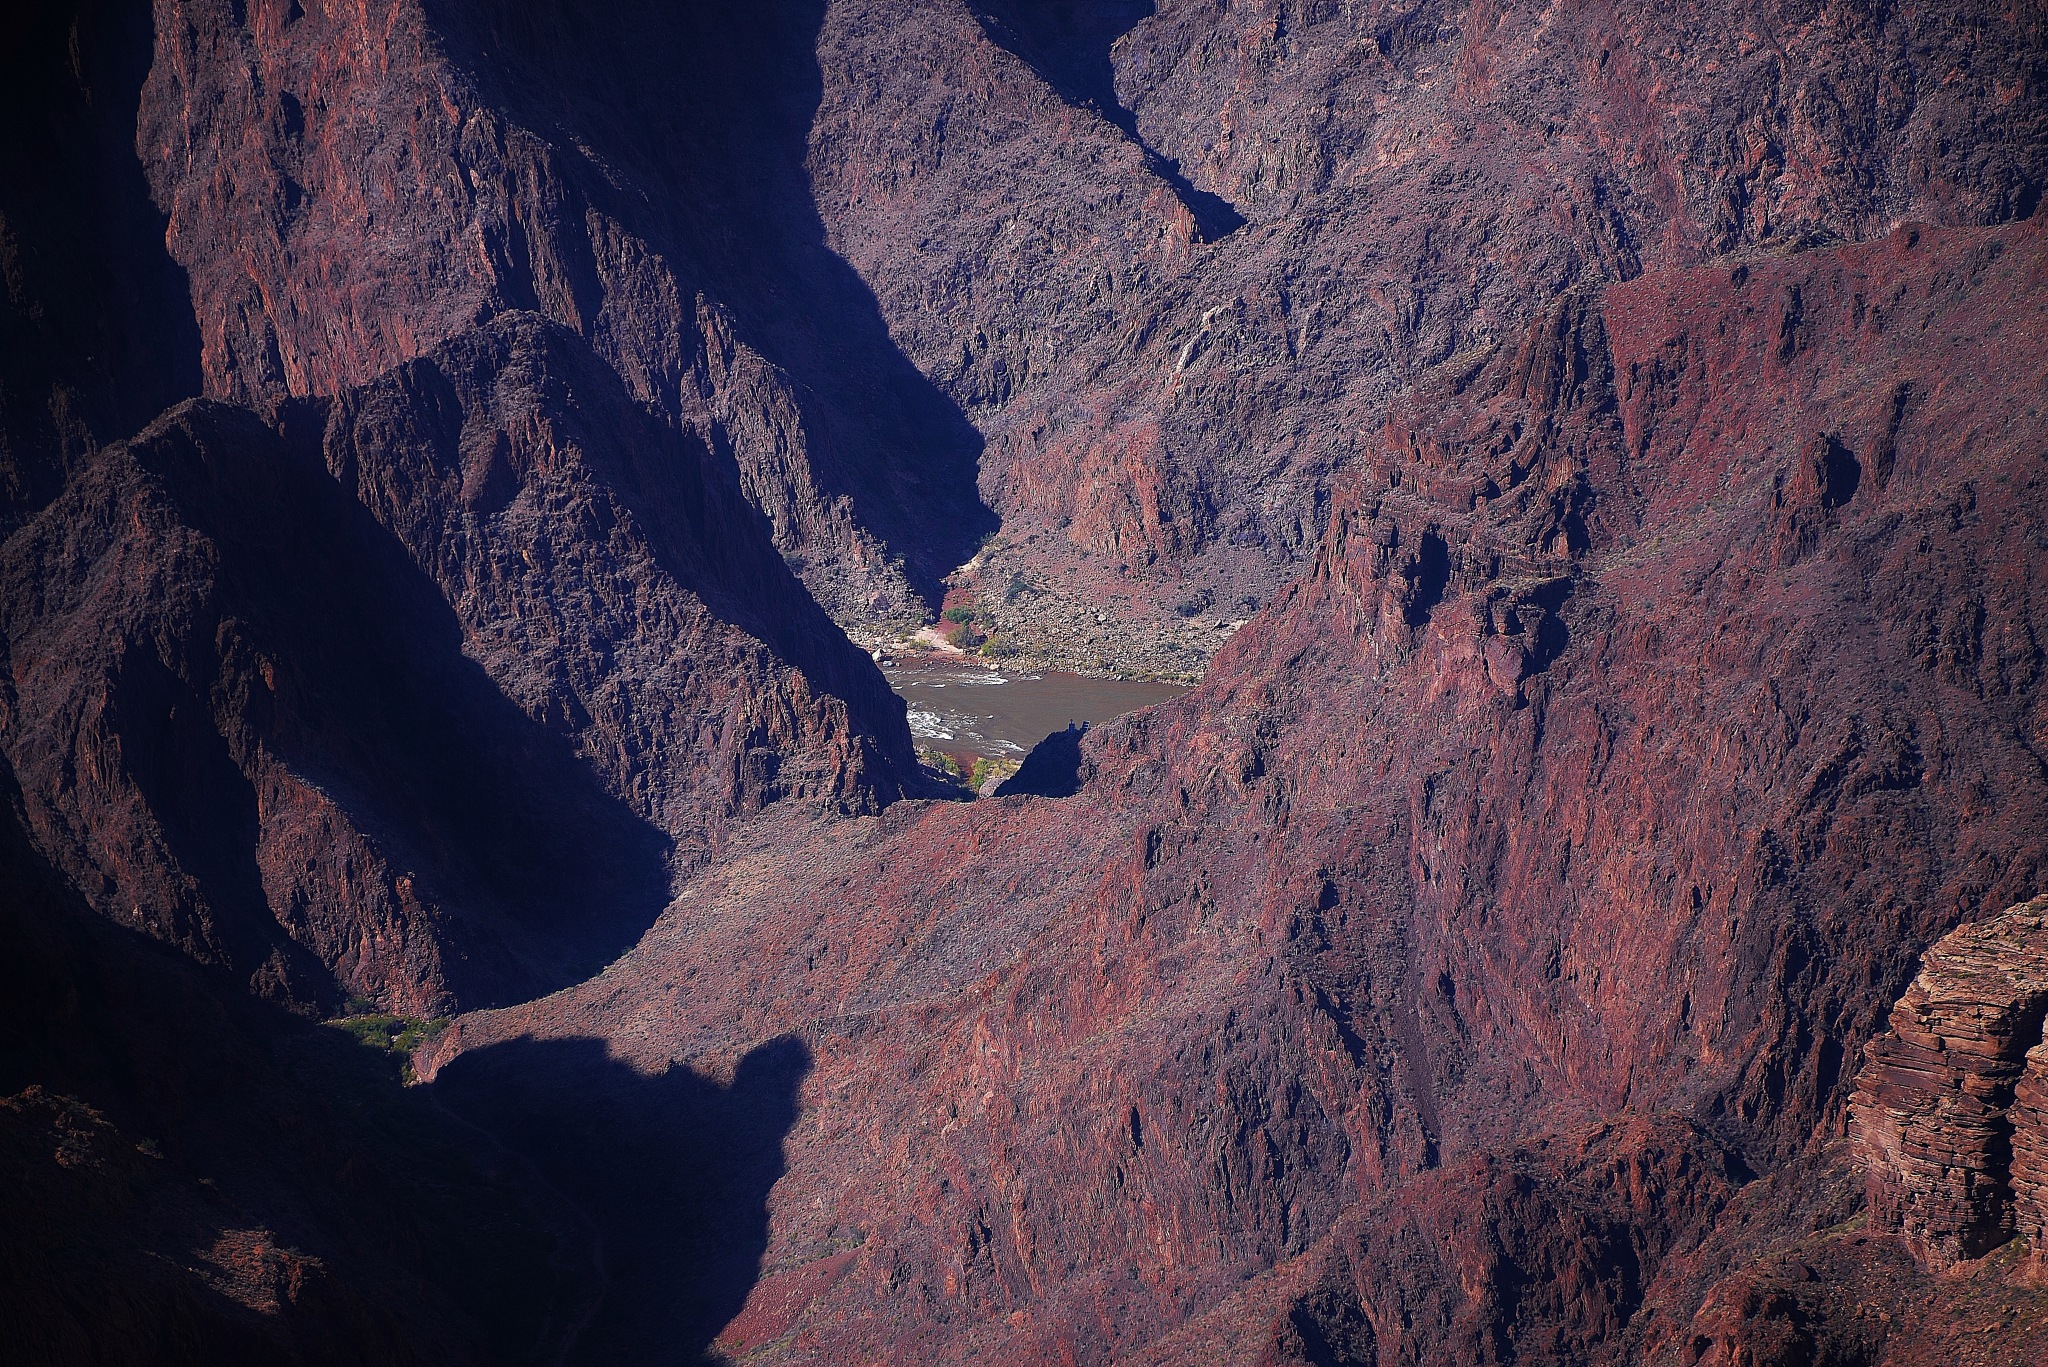 Deep down in the Grand Canyon by Per Göthe